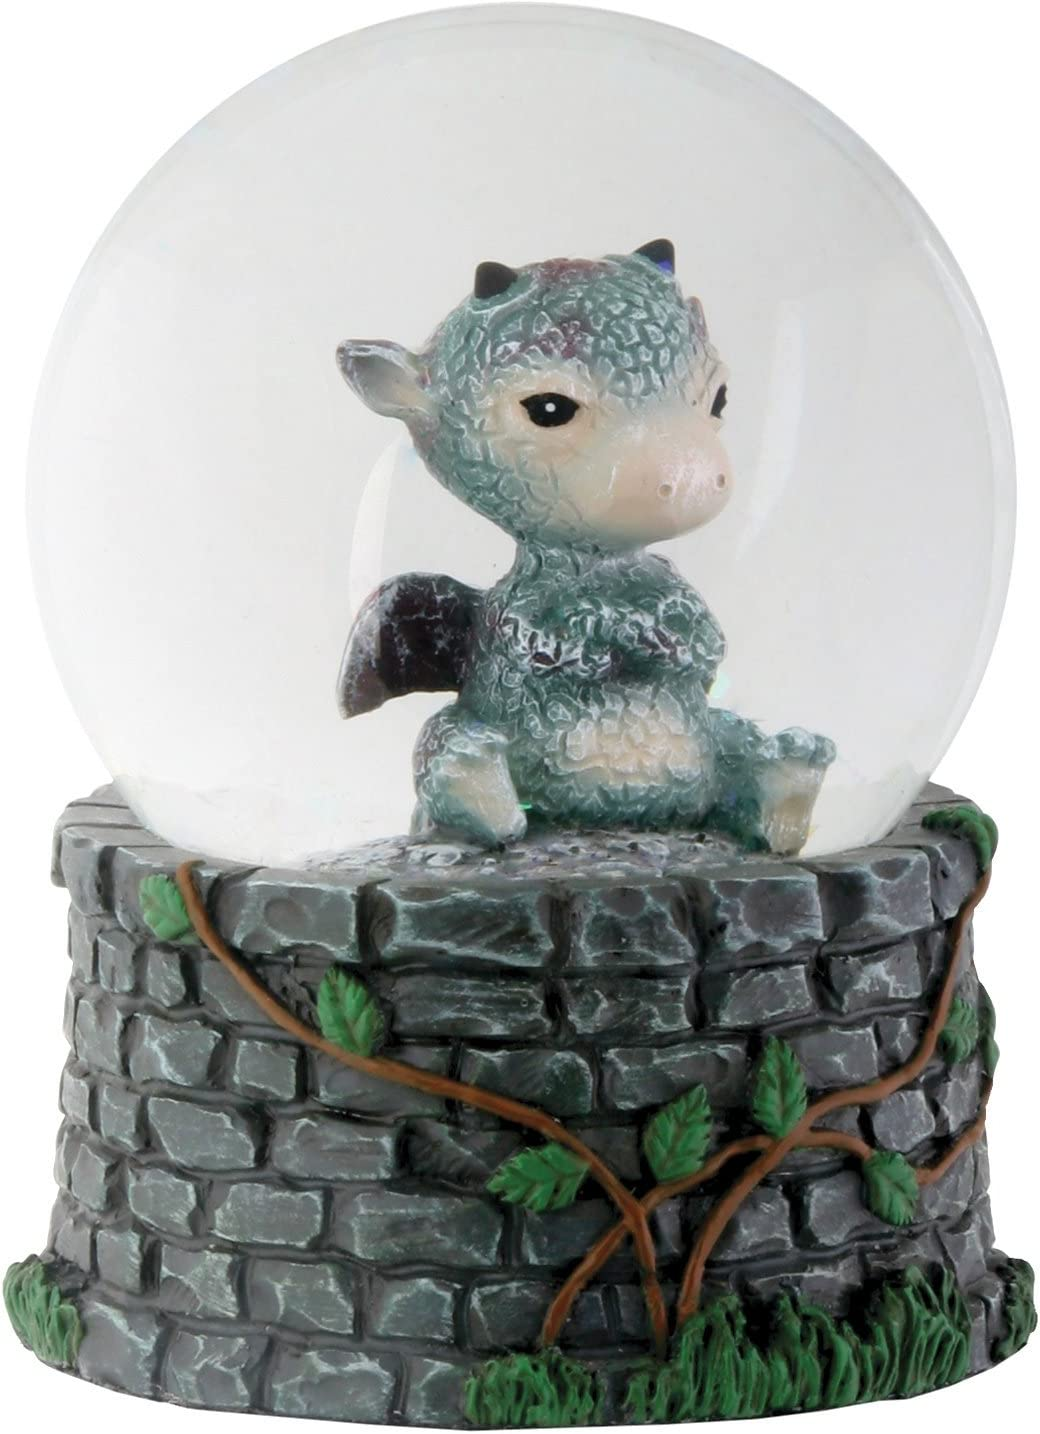 YTC 3.5 Inch Cold Cast Resin Sulky Baby Dragon Water Snow Globe Figurine